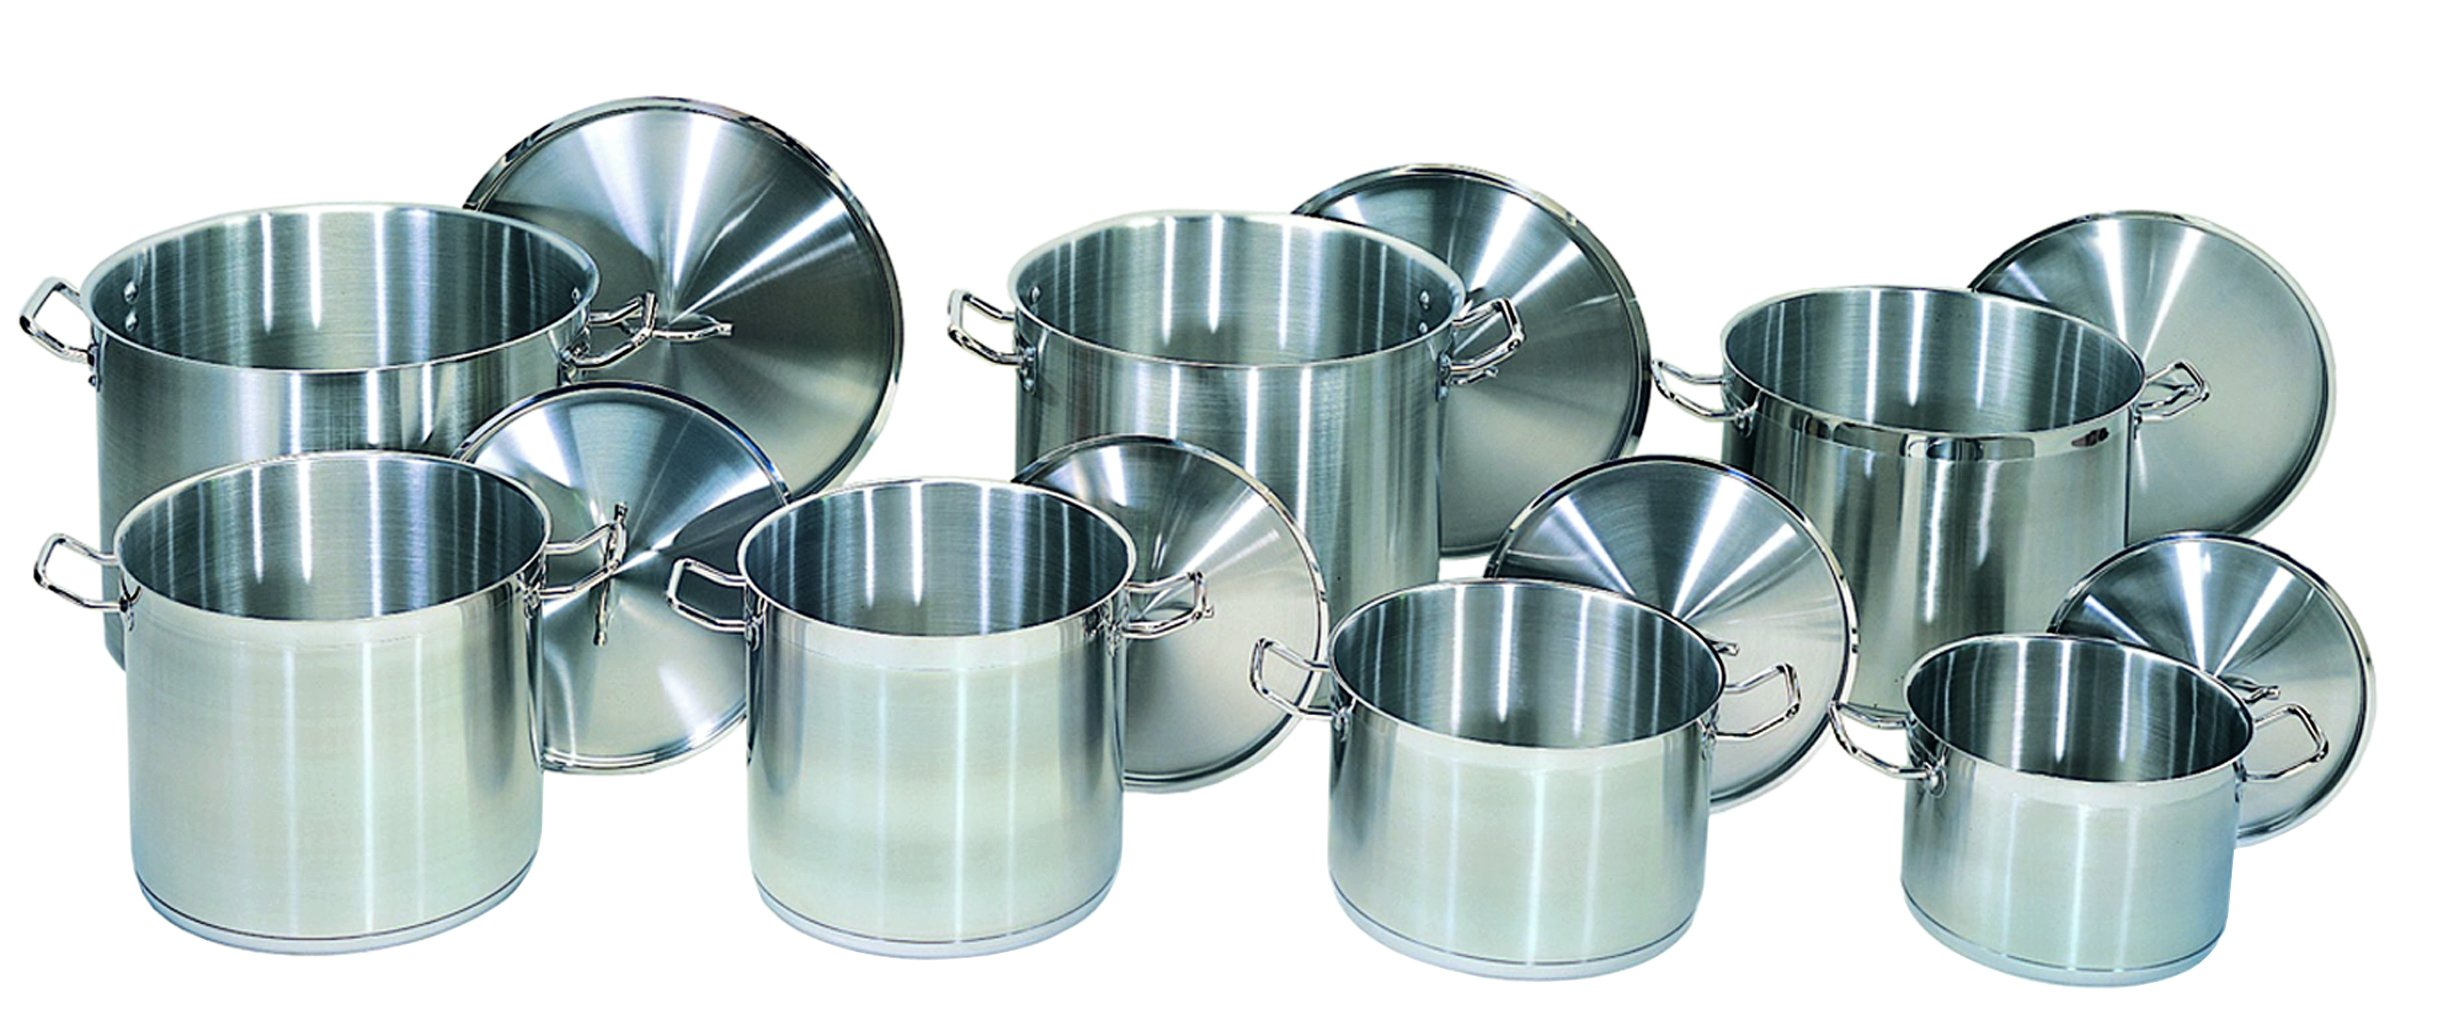 Update International (SPS-40) 40 Qt Induction Ready Stainless Steel Stock Pot w/Cover by Update International (Image #4)